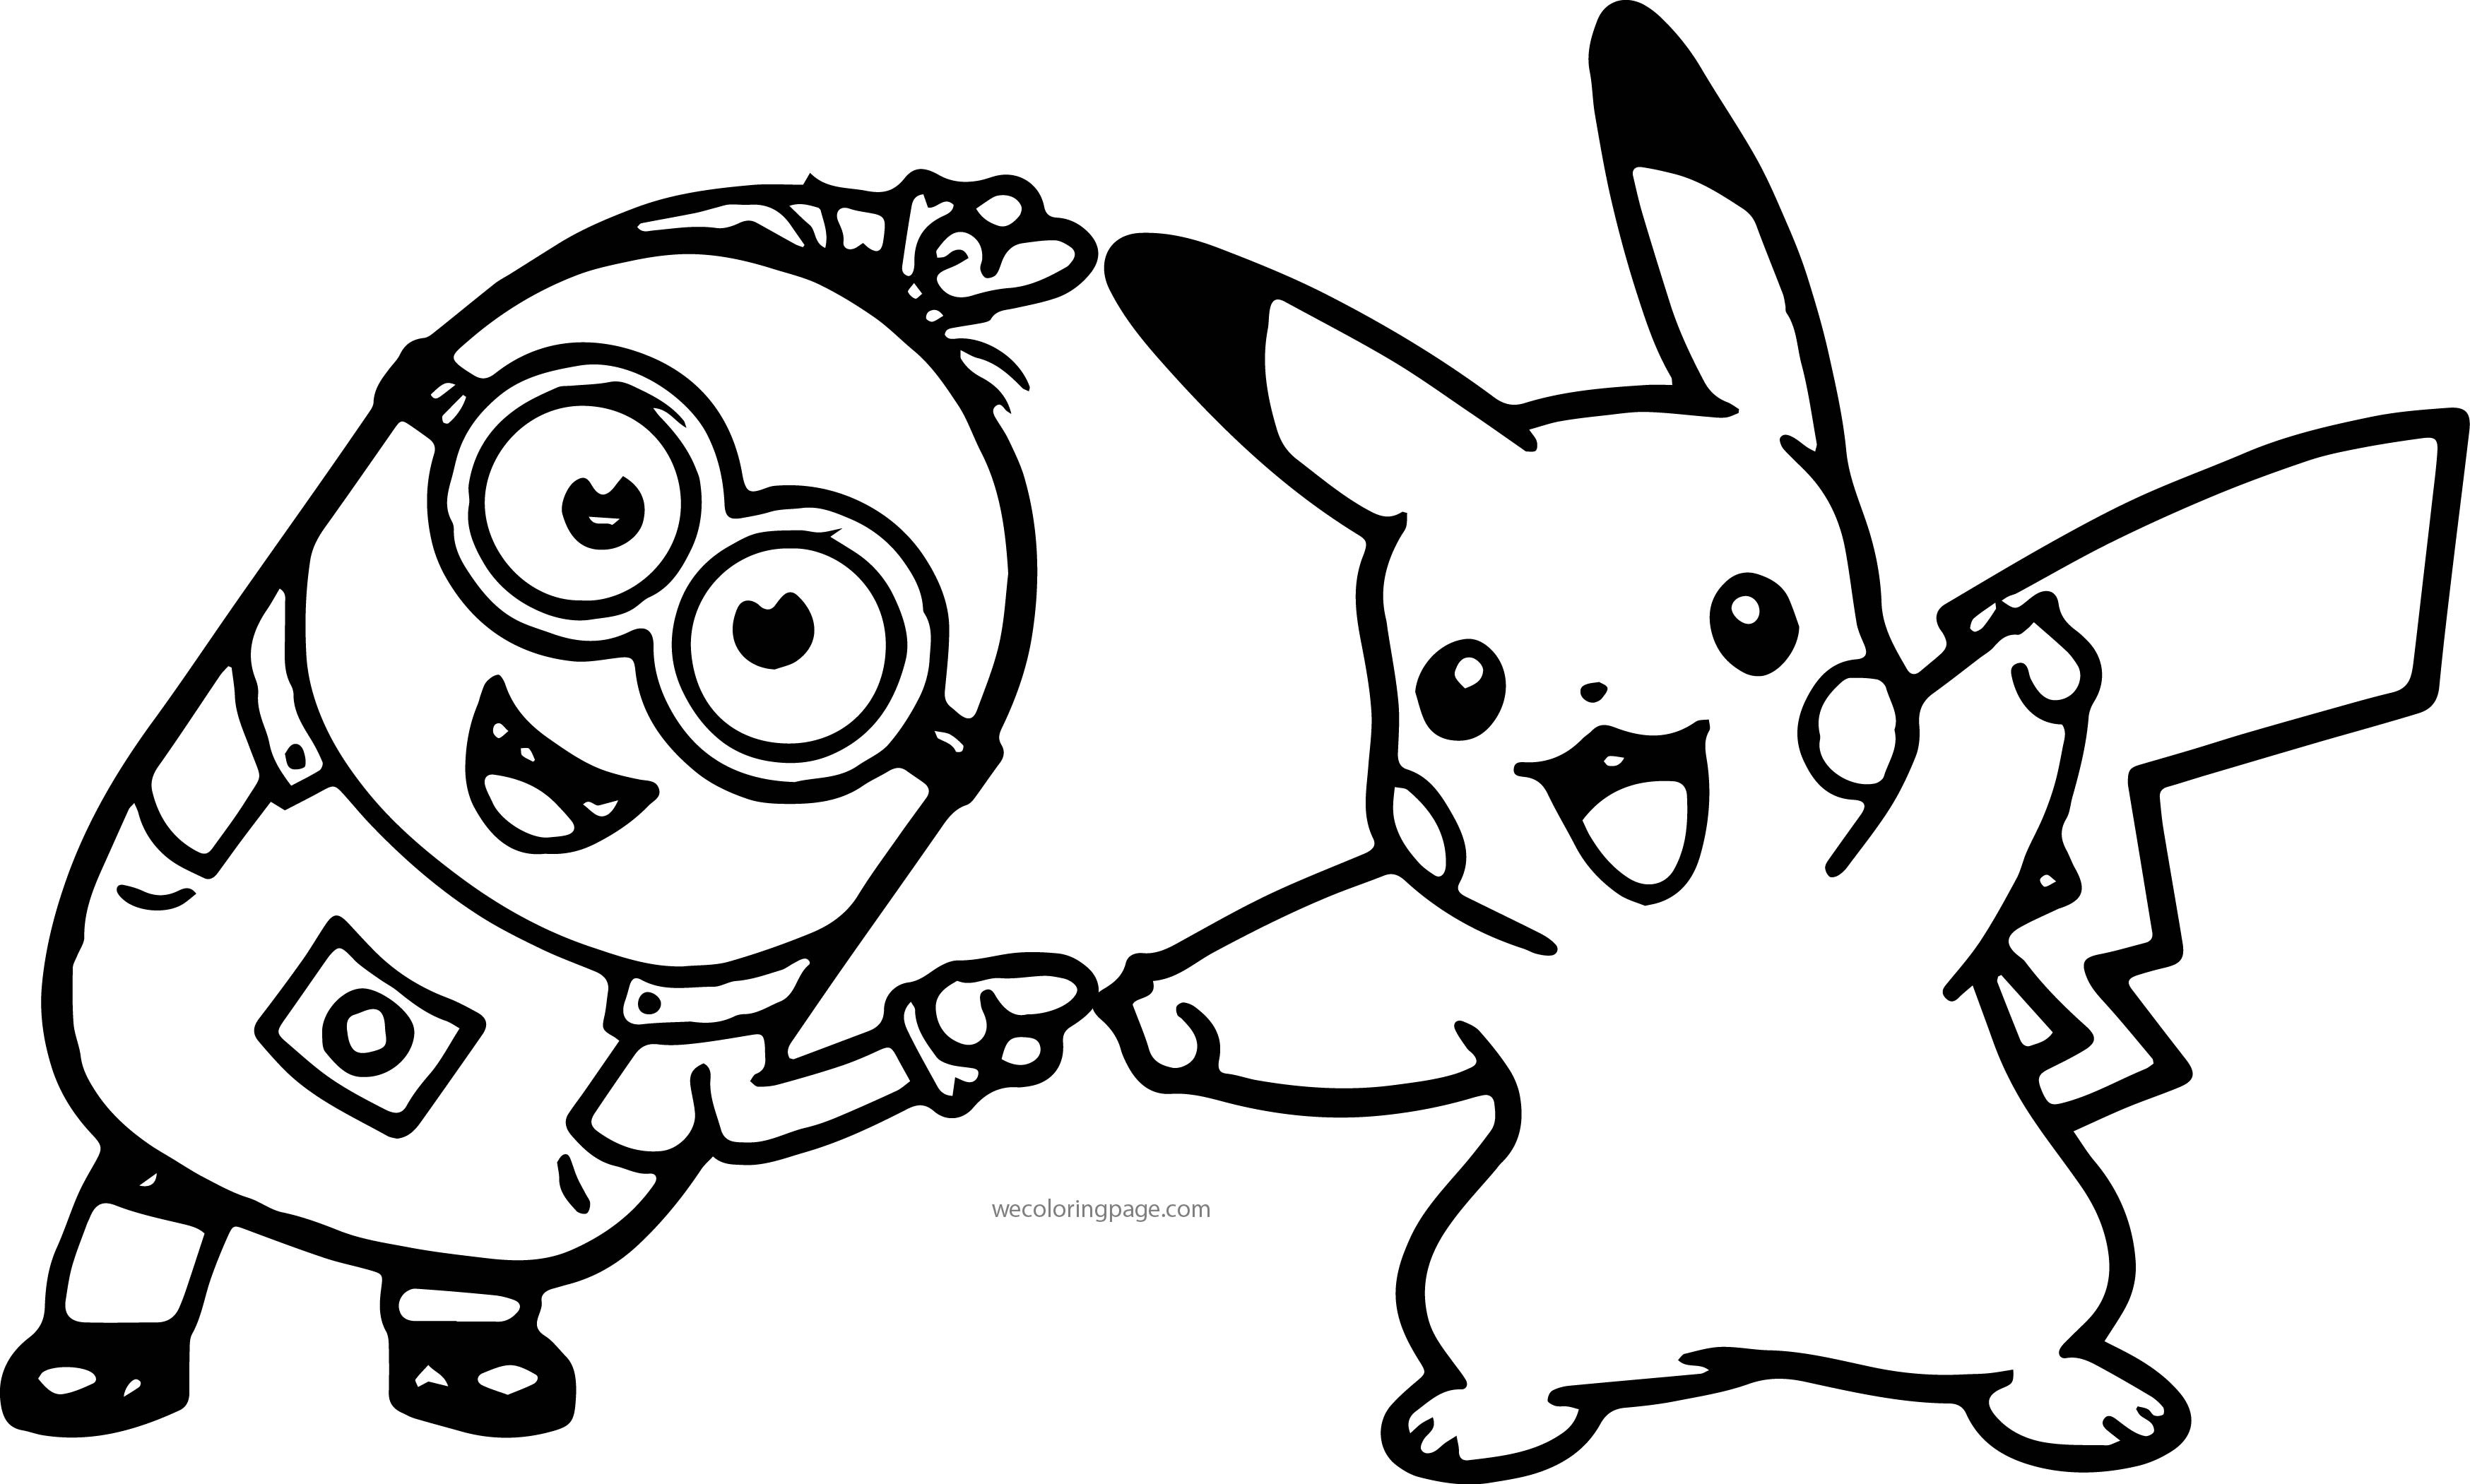 Charmander Pokemon Coloring Pages at GetDrawings | Free ...